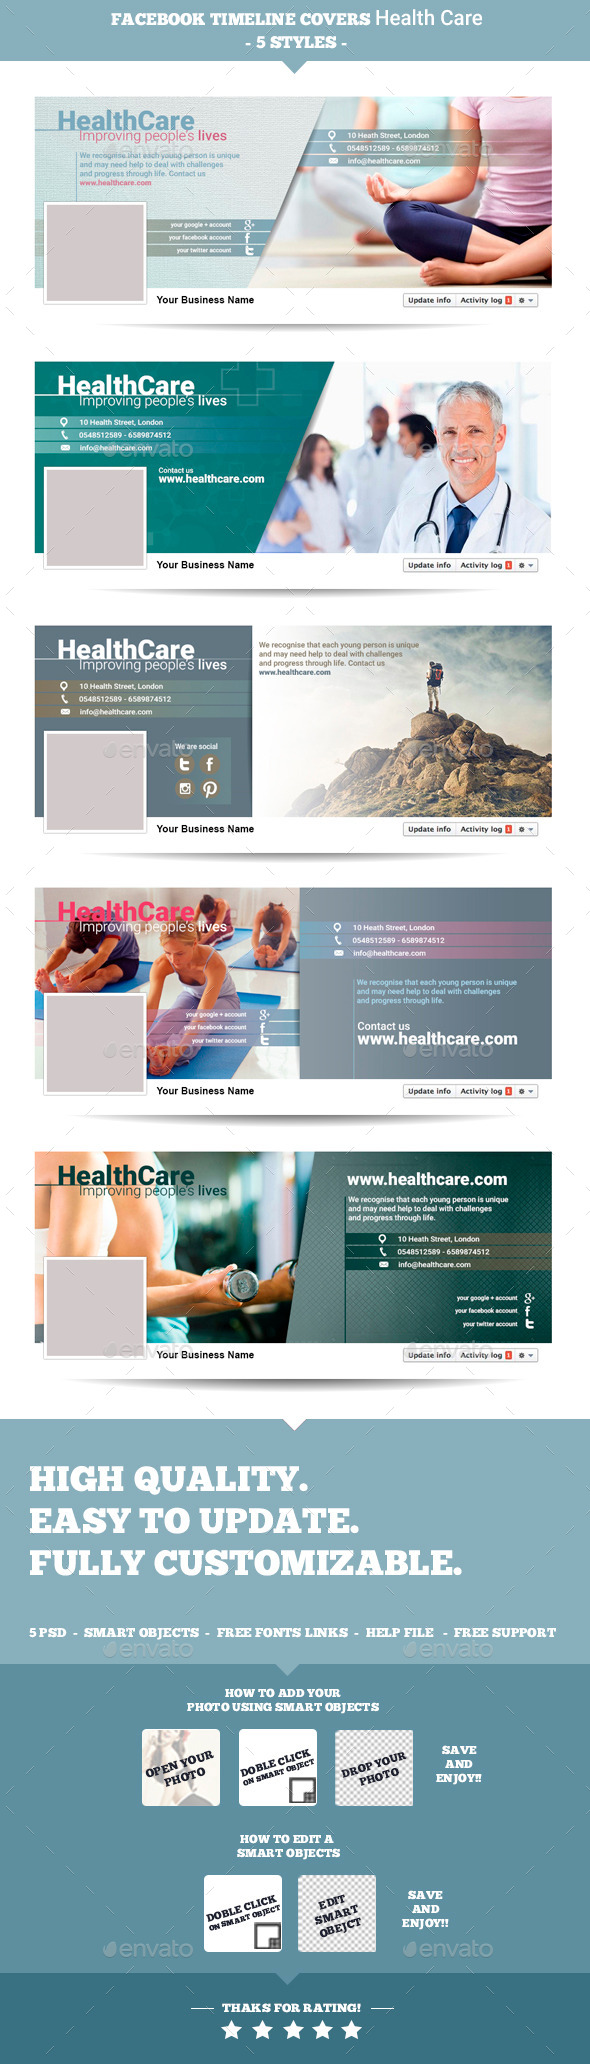 GraphicRiver Facebook Timeline Covers Health Care 8799836